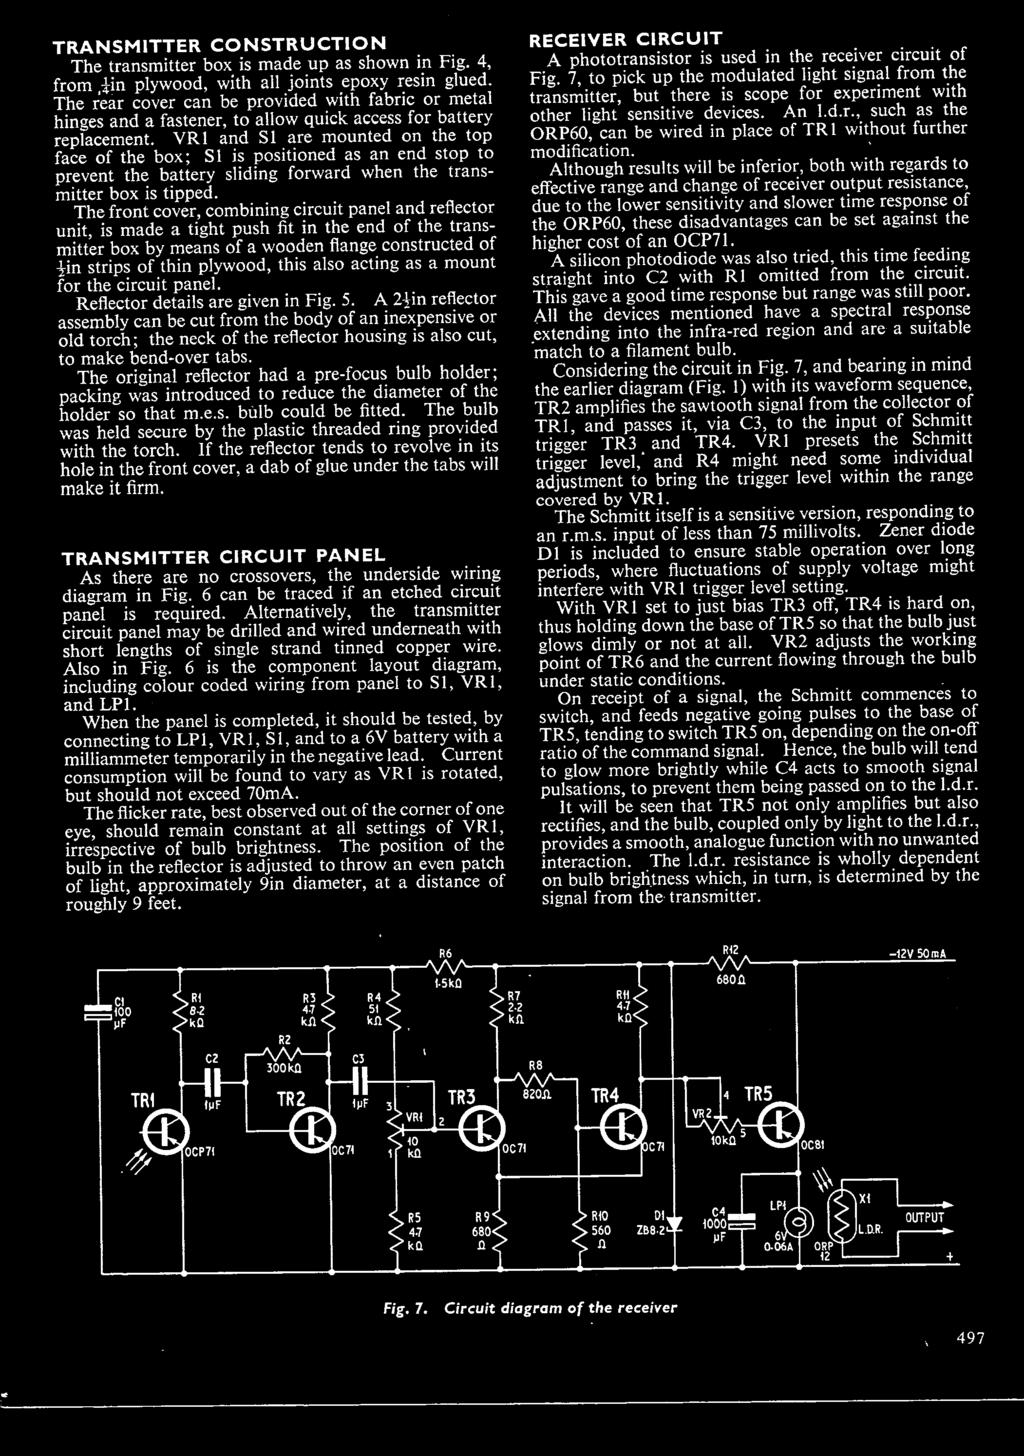 Practical Electroimip Three Shillings July 19b0 Vdurs To Commnnd Rr3 Ge Relay Wiring Diagram Acting As A Mount For The Circuit Panel Reflector Details Are Given In Fig